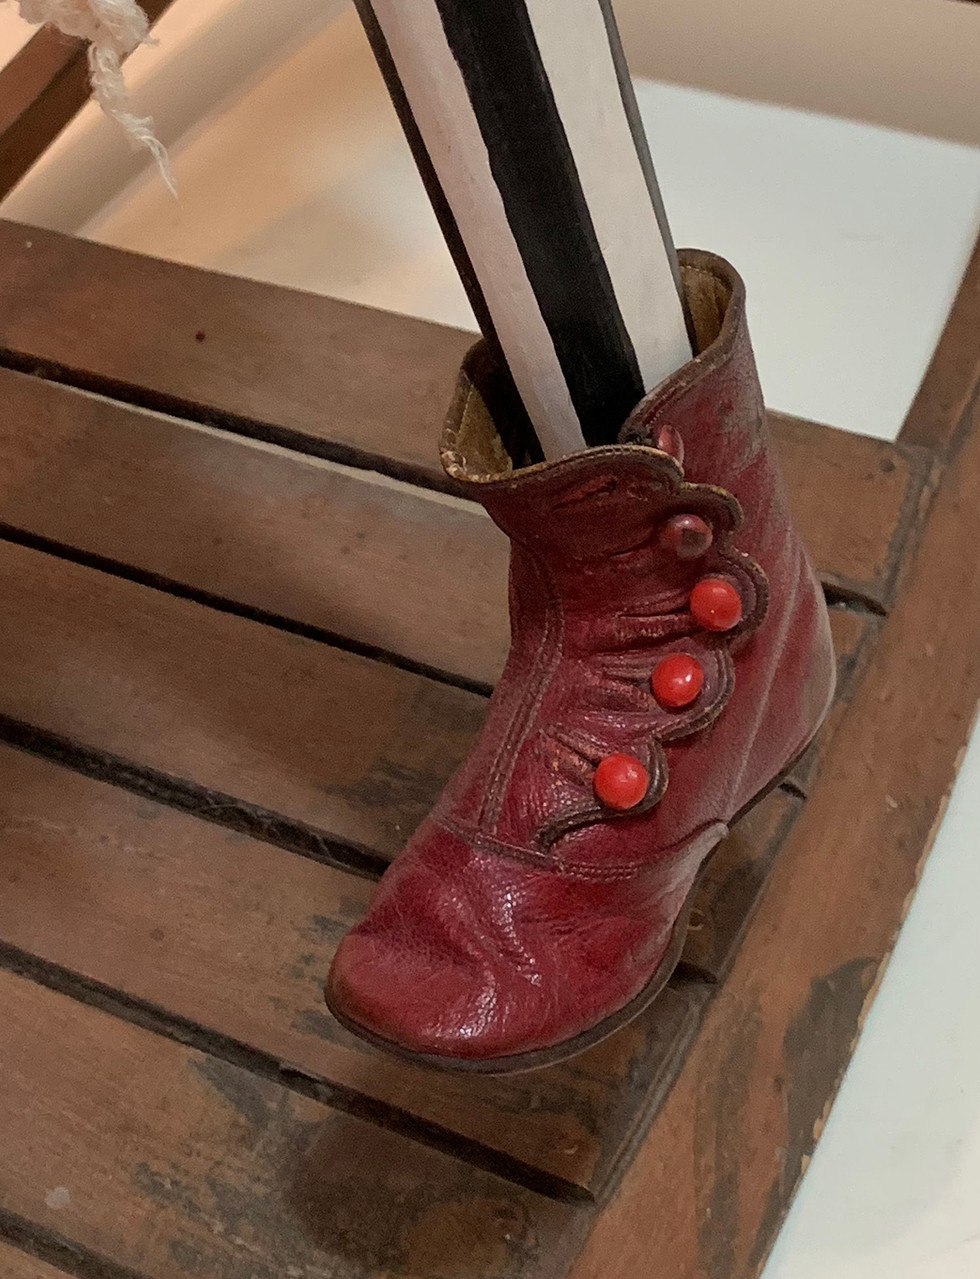 Grandfather's boots